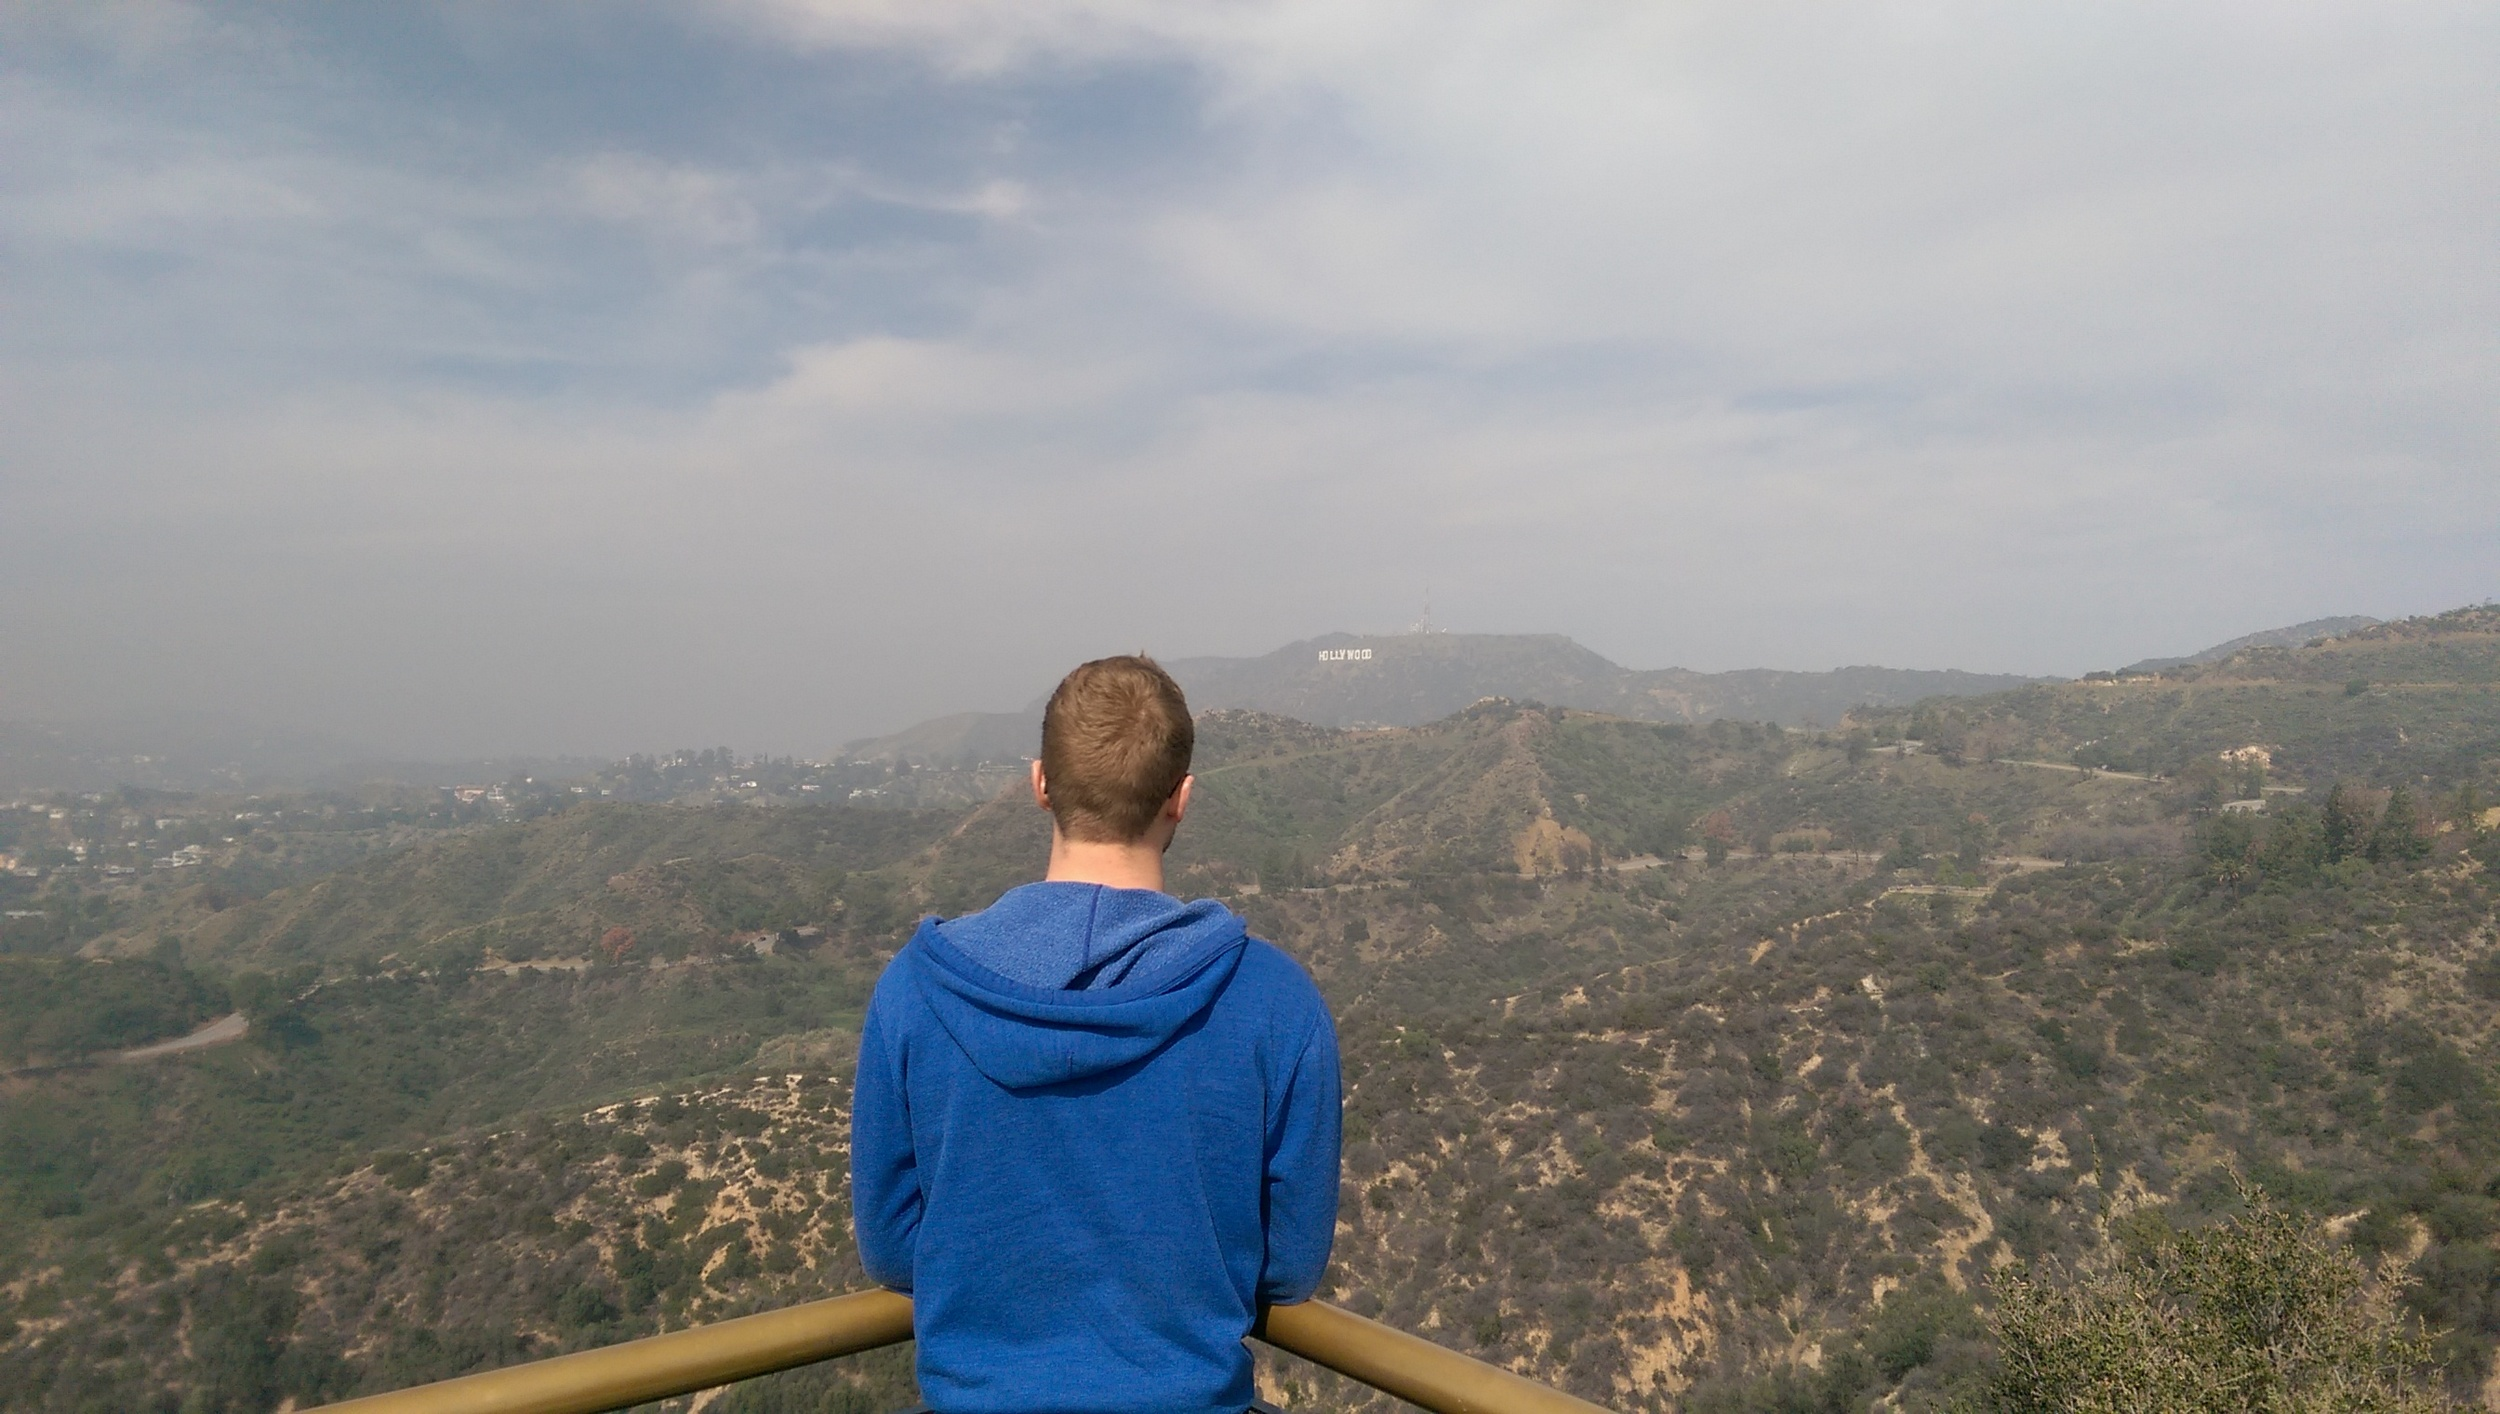 'In the Hollywood Hills and the Boulevards...'